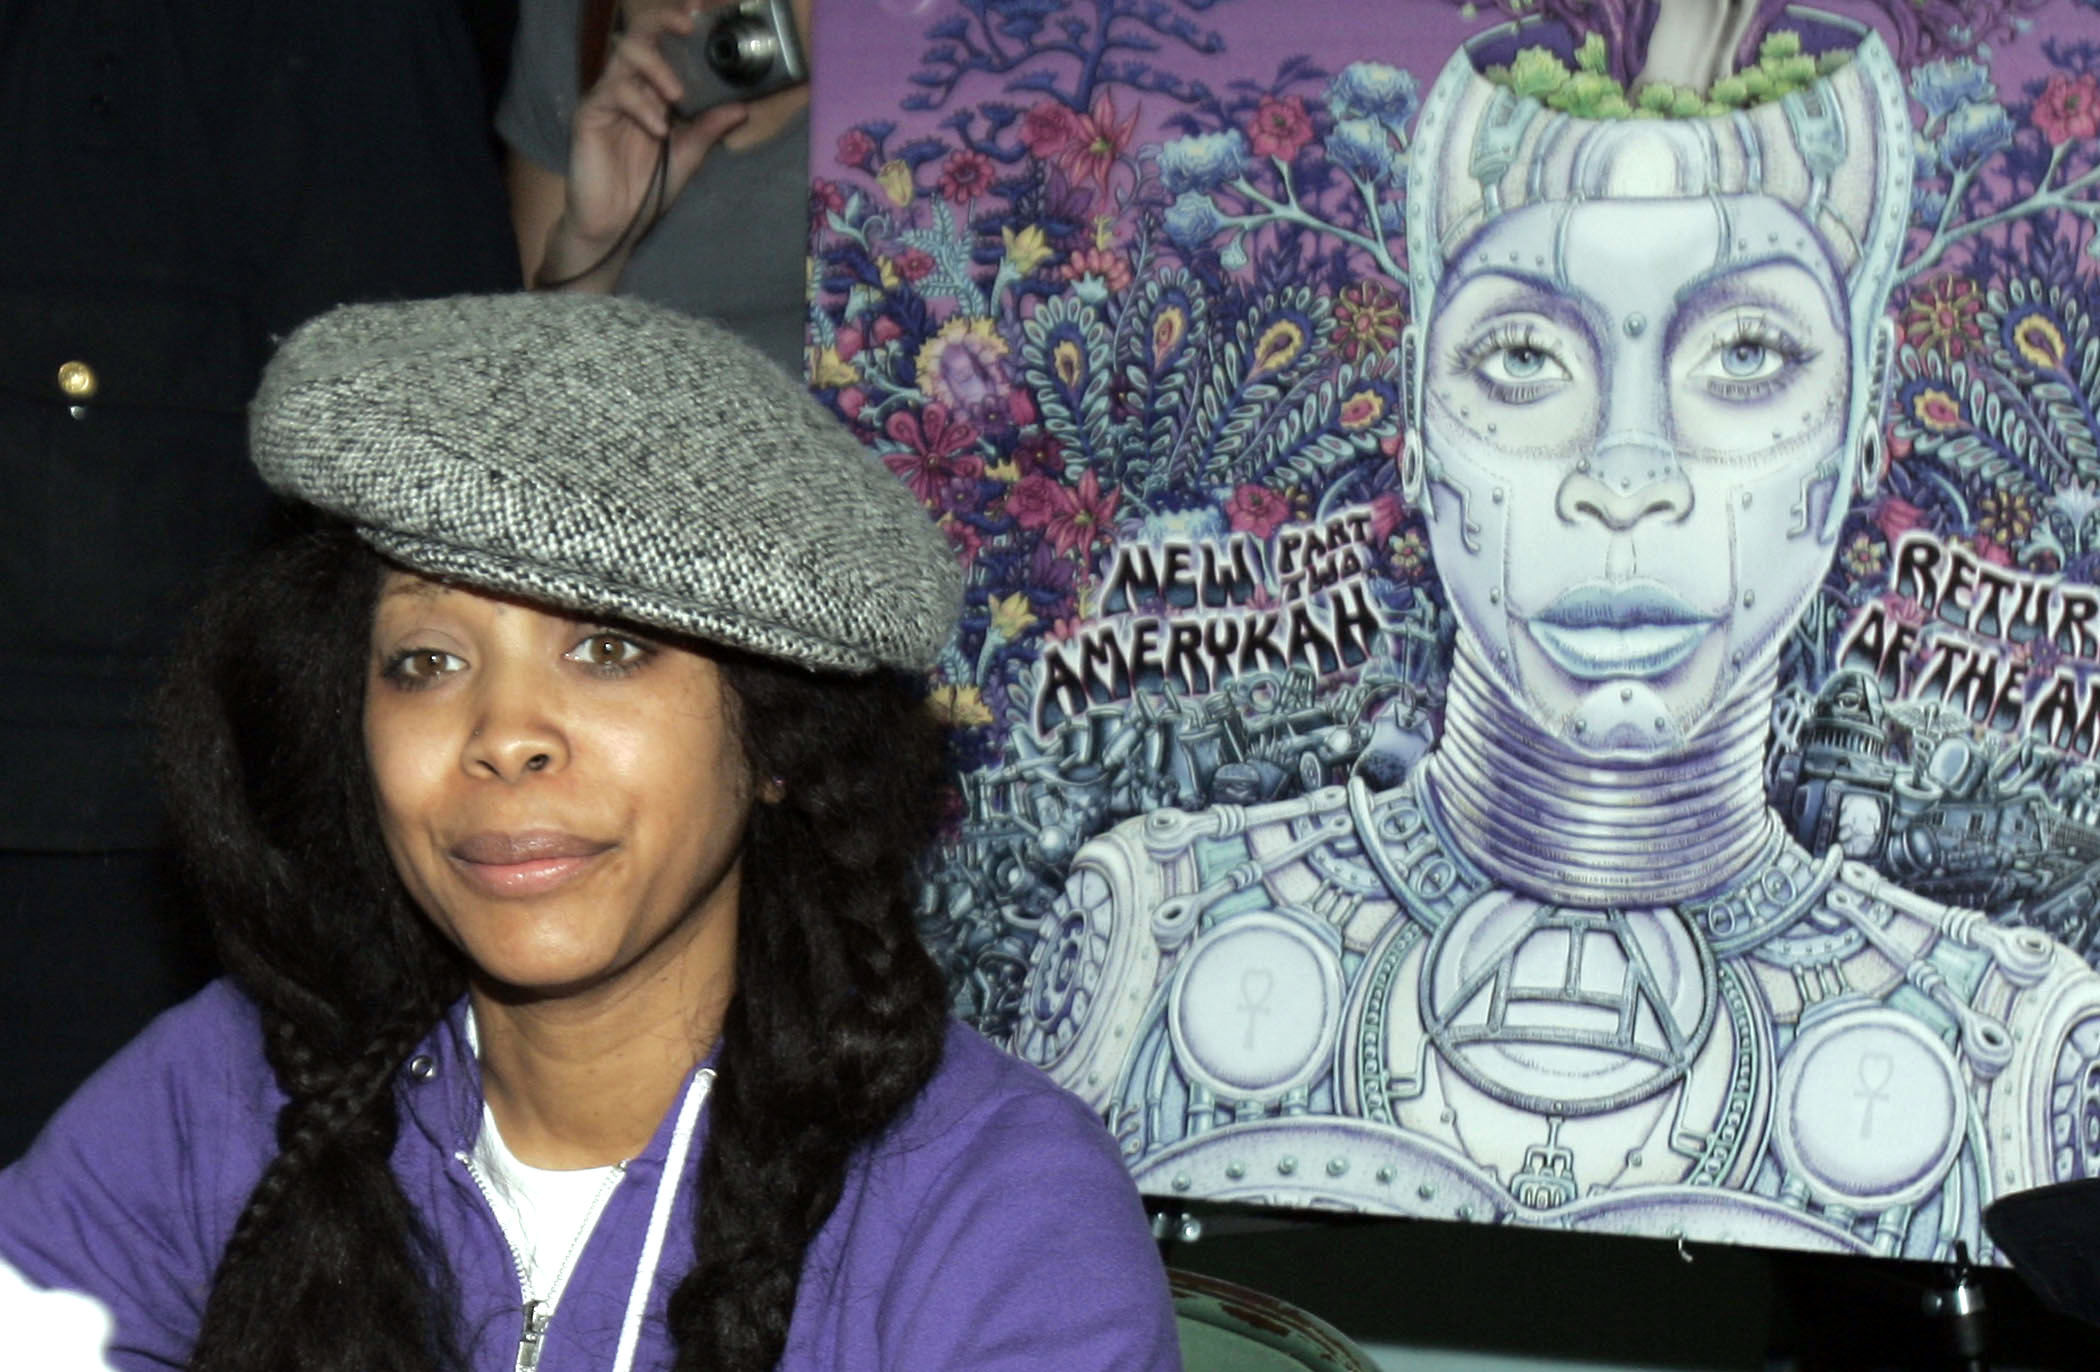 Singer Erykah Badu signs autographs for her new album 'New Amerykah, Pt. 2: Return of the Ankh' in Dallas, Texas on Saturday.